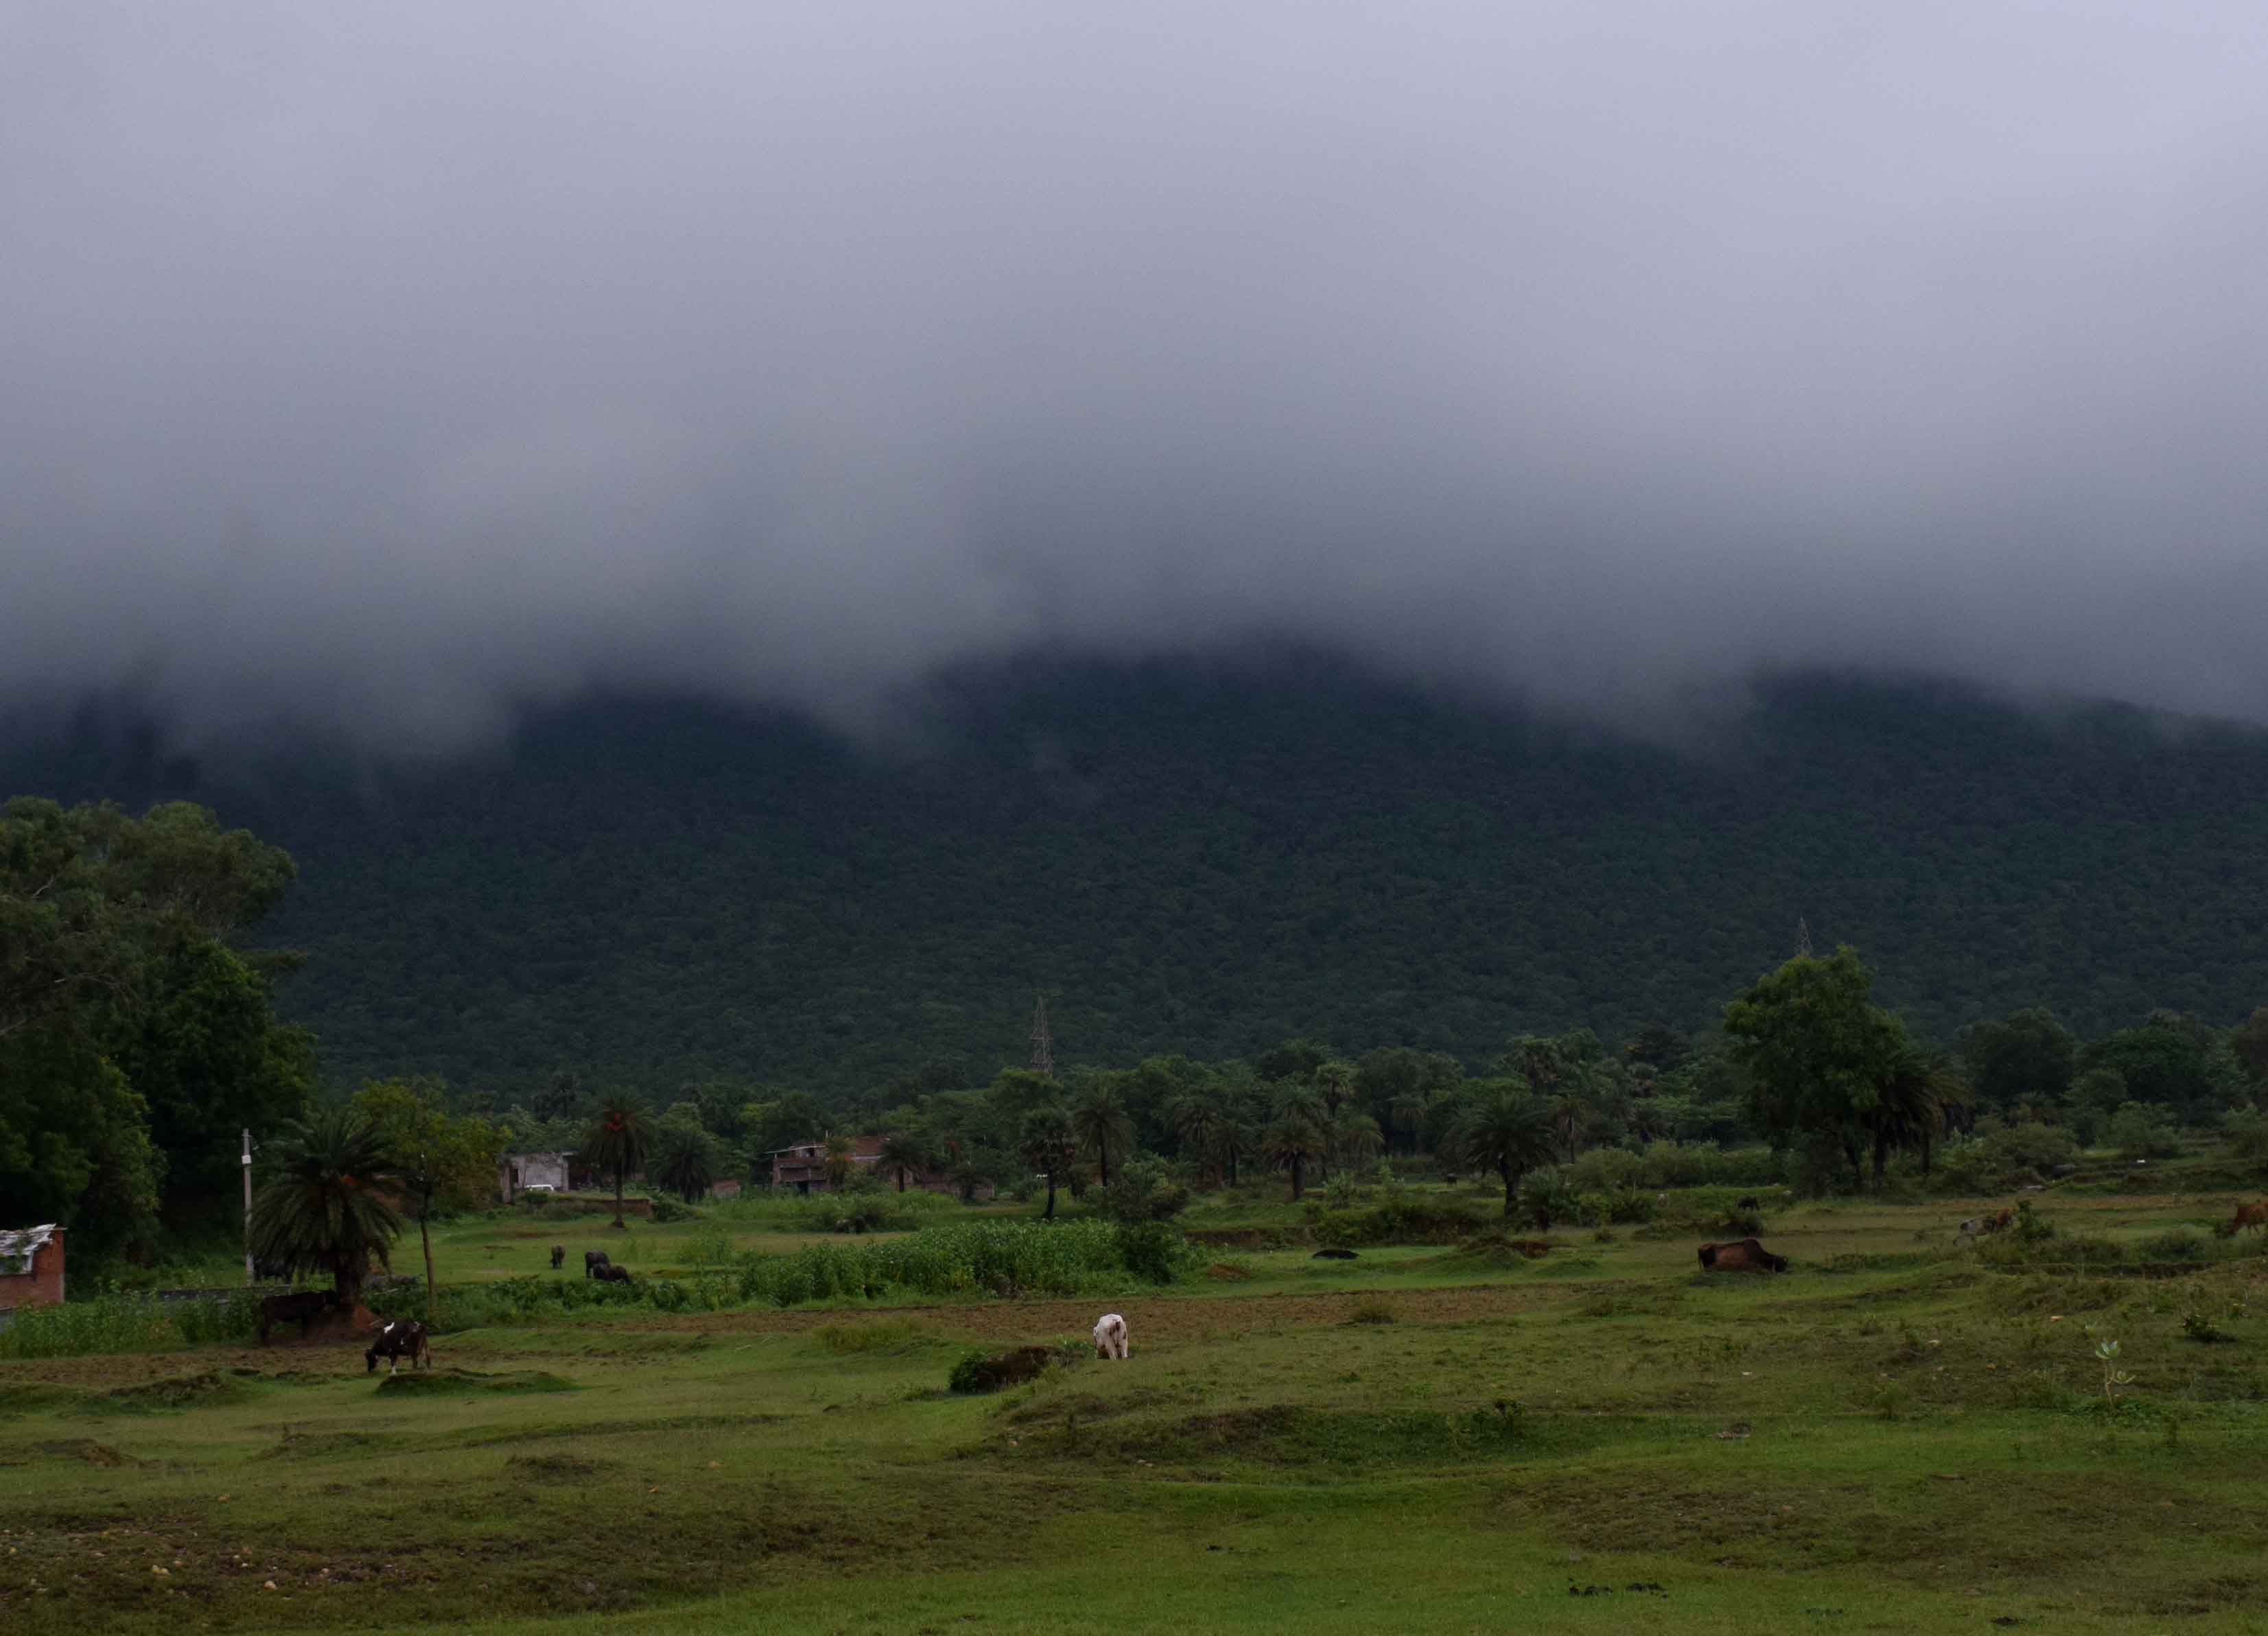 Monsoon clouds descend on Dalma hills on the outskirts of Jamshedpur on Sunday